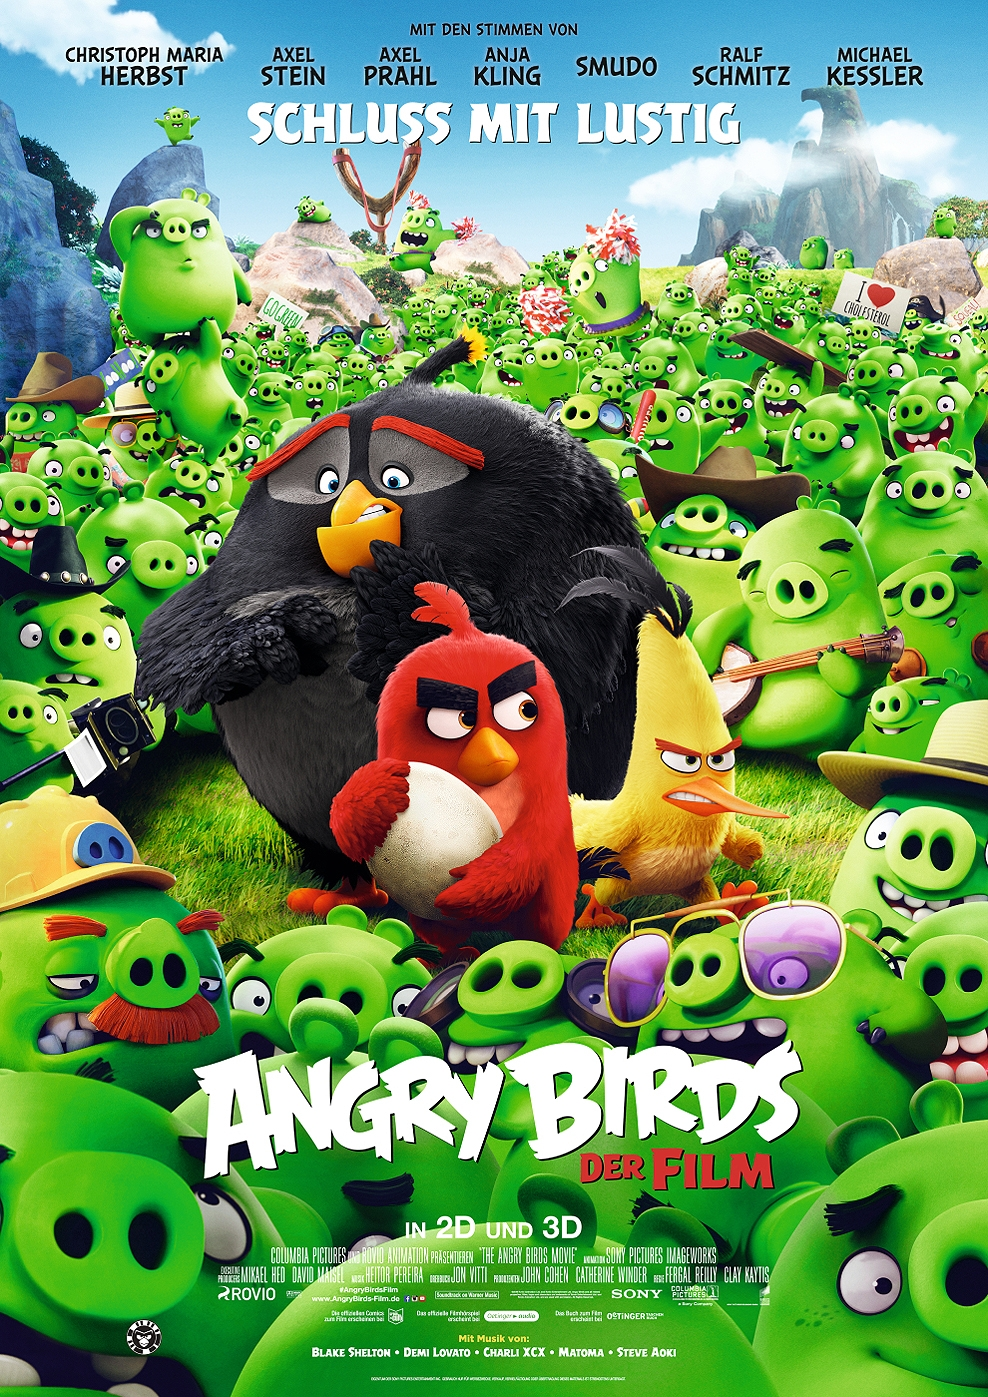 Angry Birds - Der Film (Poster)